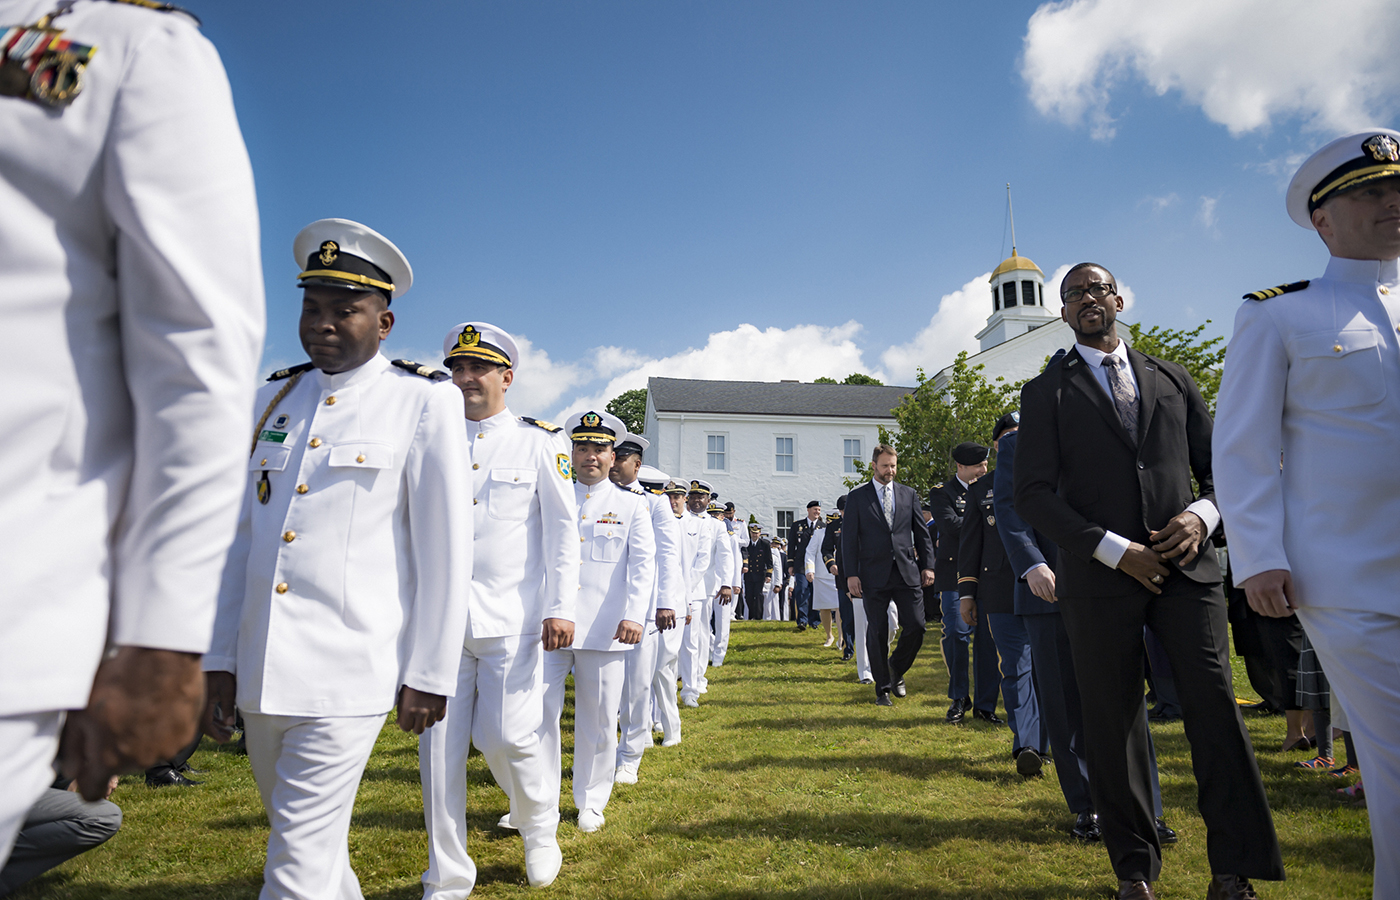 Students of U.S. Naval War College's 2019 graduating class participate in a commencement ceremony on Dewey Field in Newport, R.I., June 14.